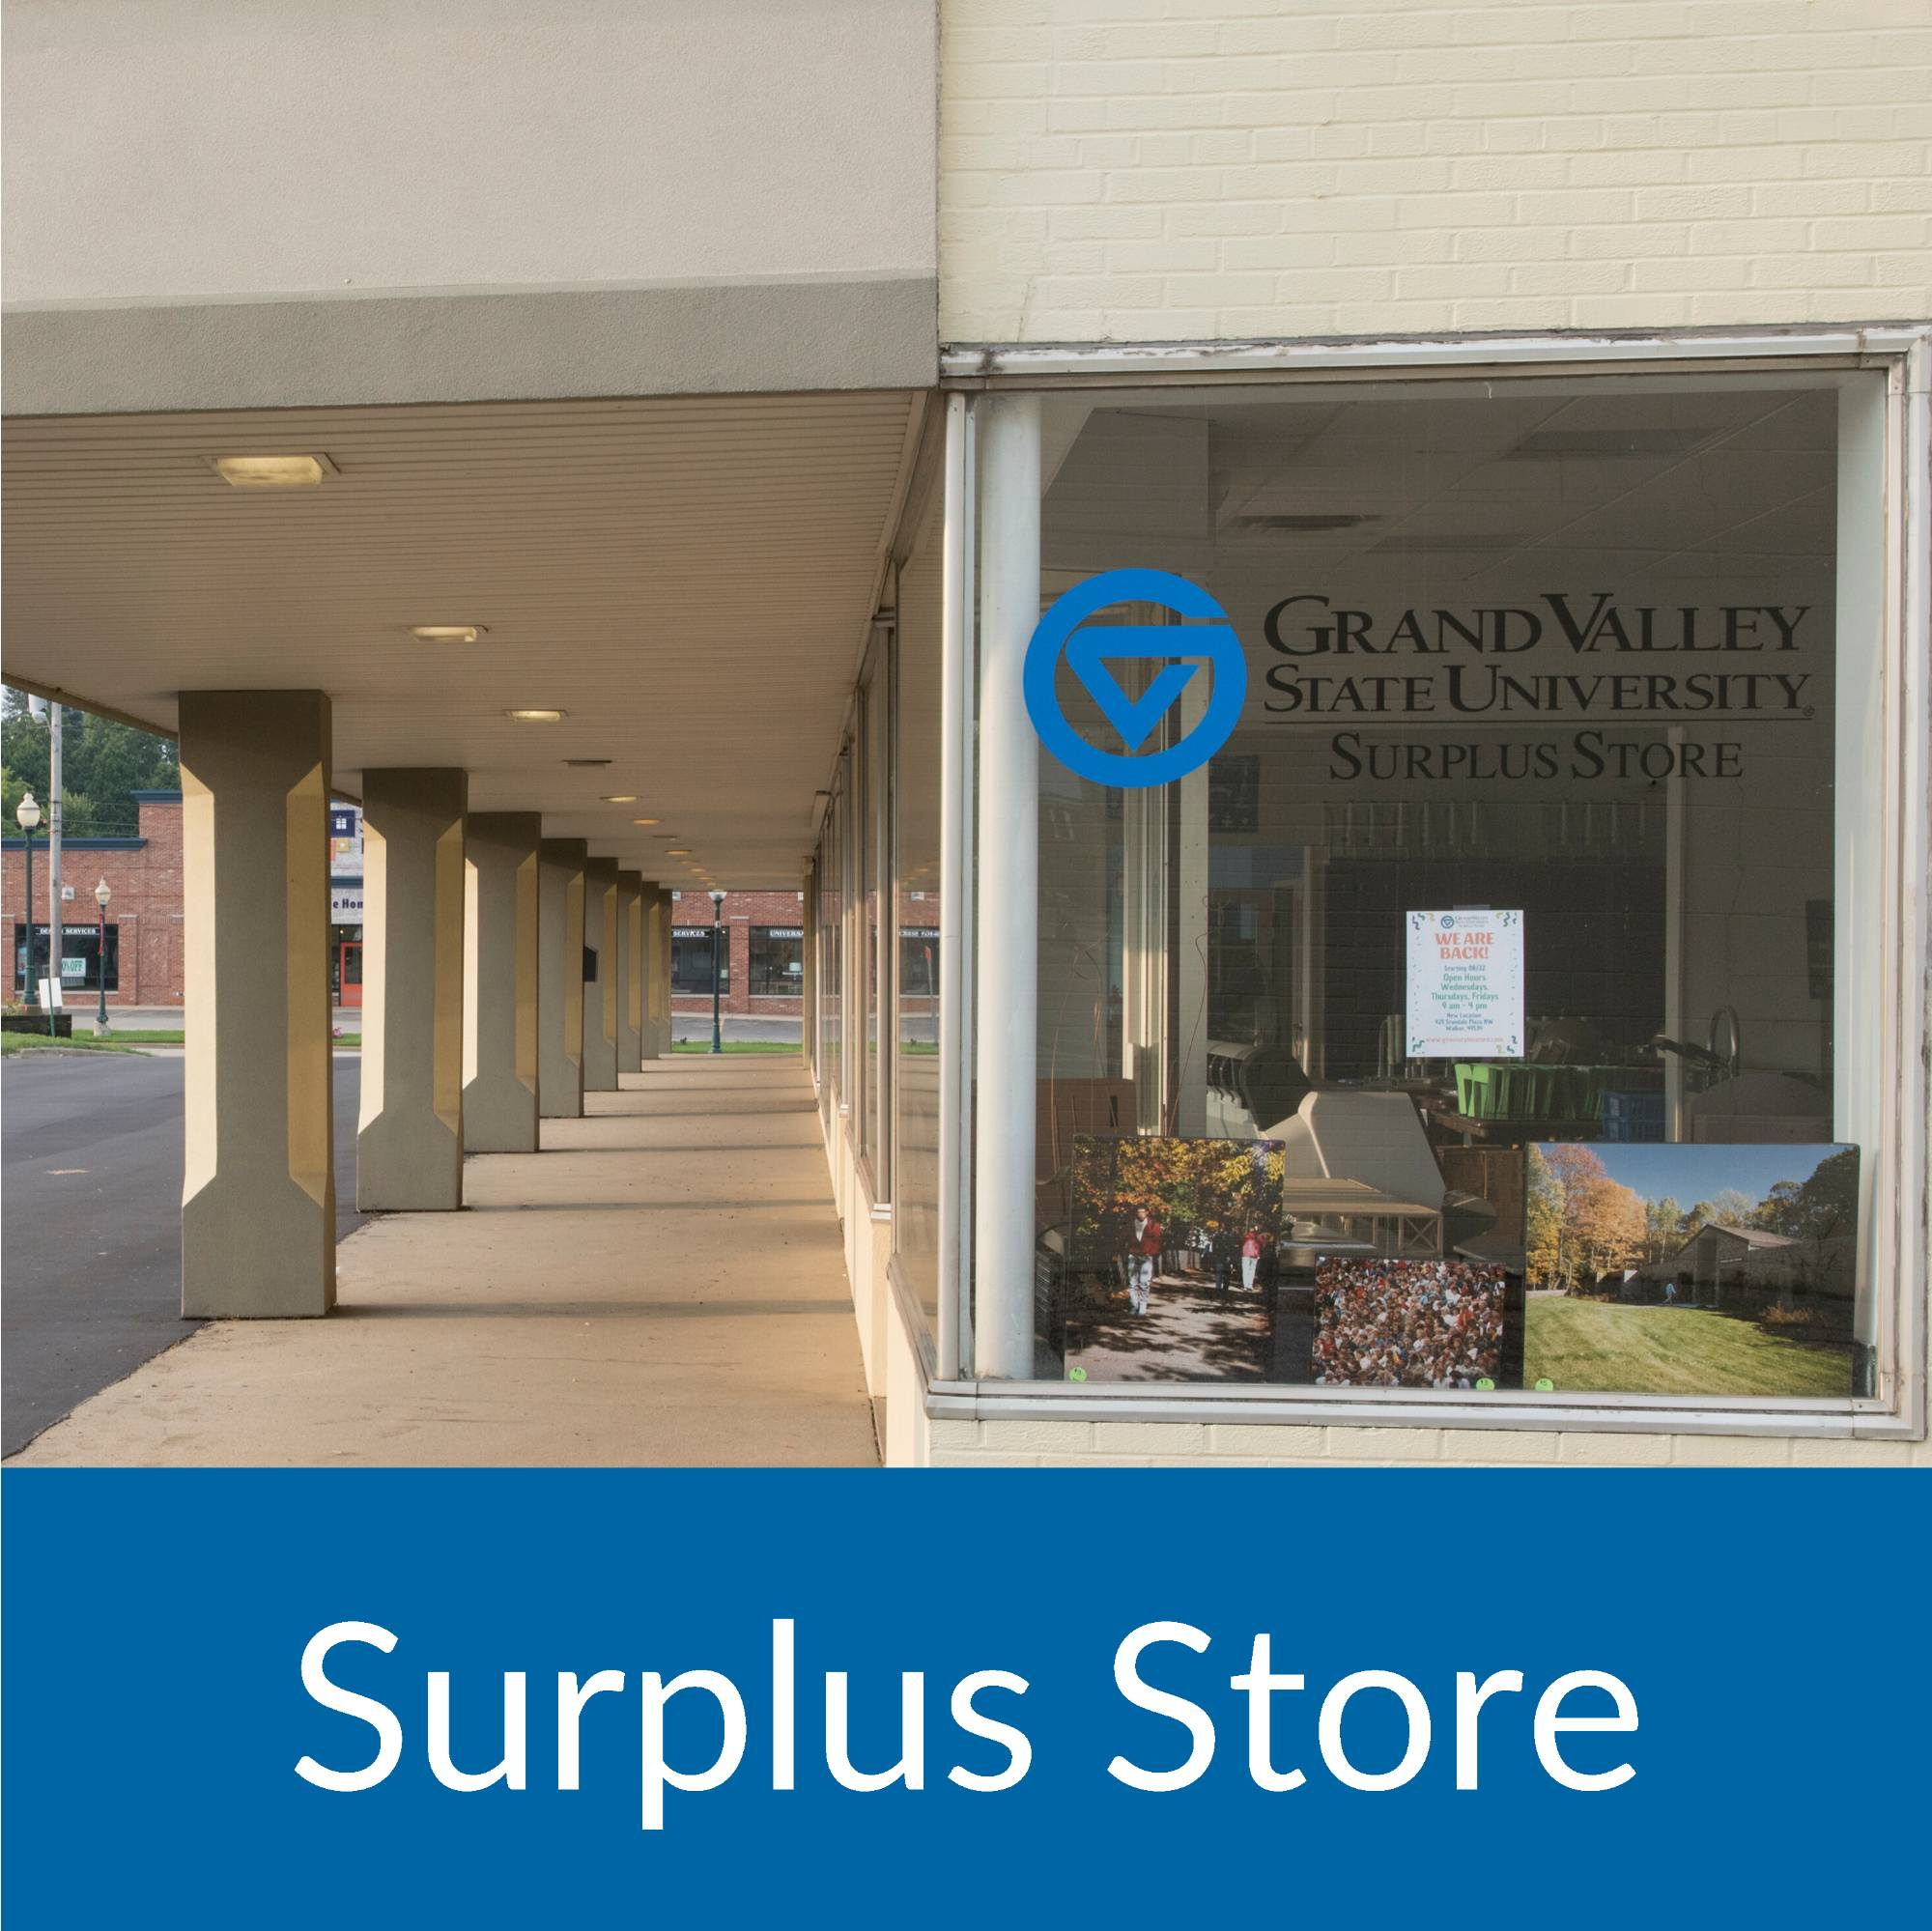 GVSU Surplus Store